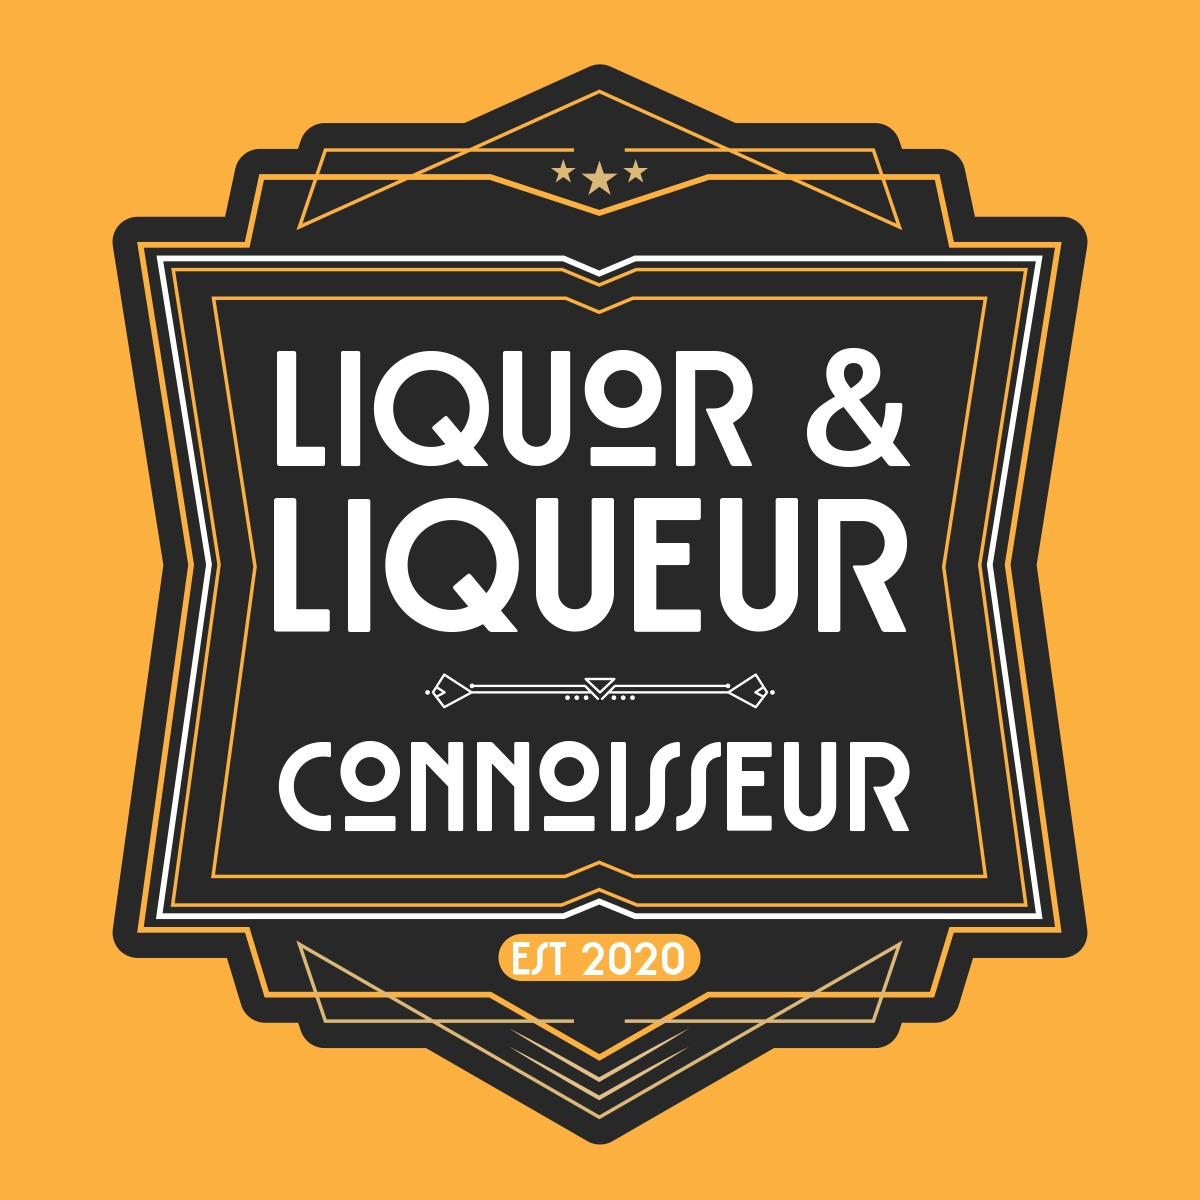 Liquor & Liqueur Connoisseur - Podcast about Distilled Spirits